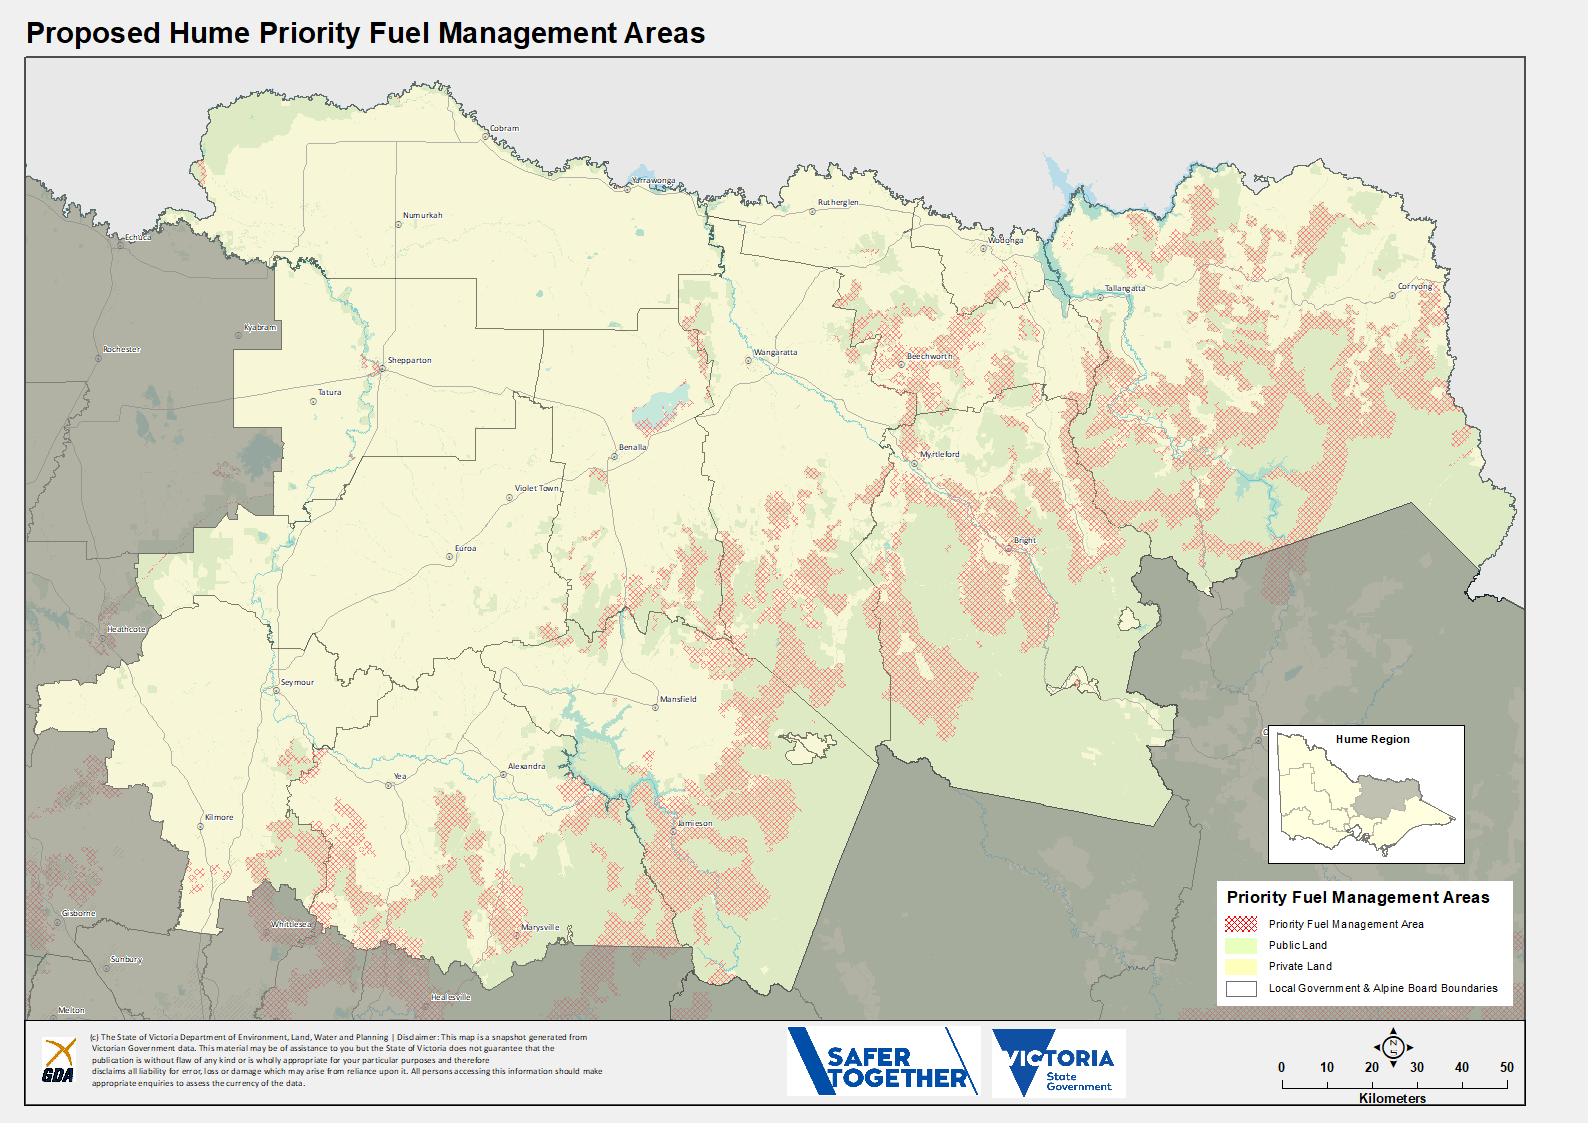 A map of the proposed Priority Fuel Management Areas in the Hume Region